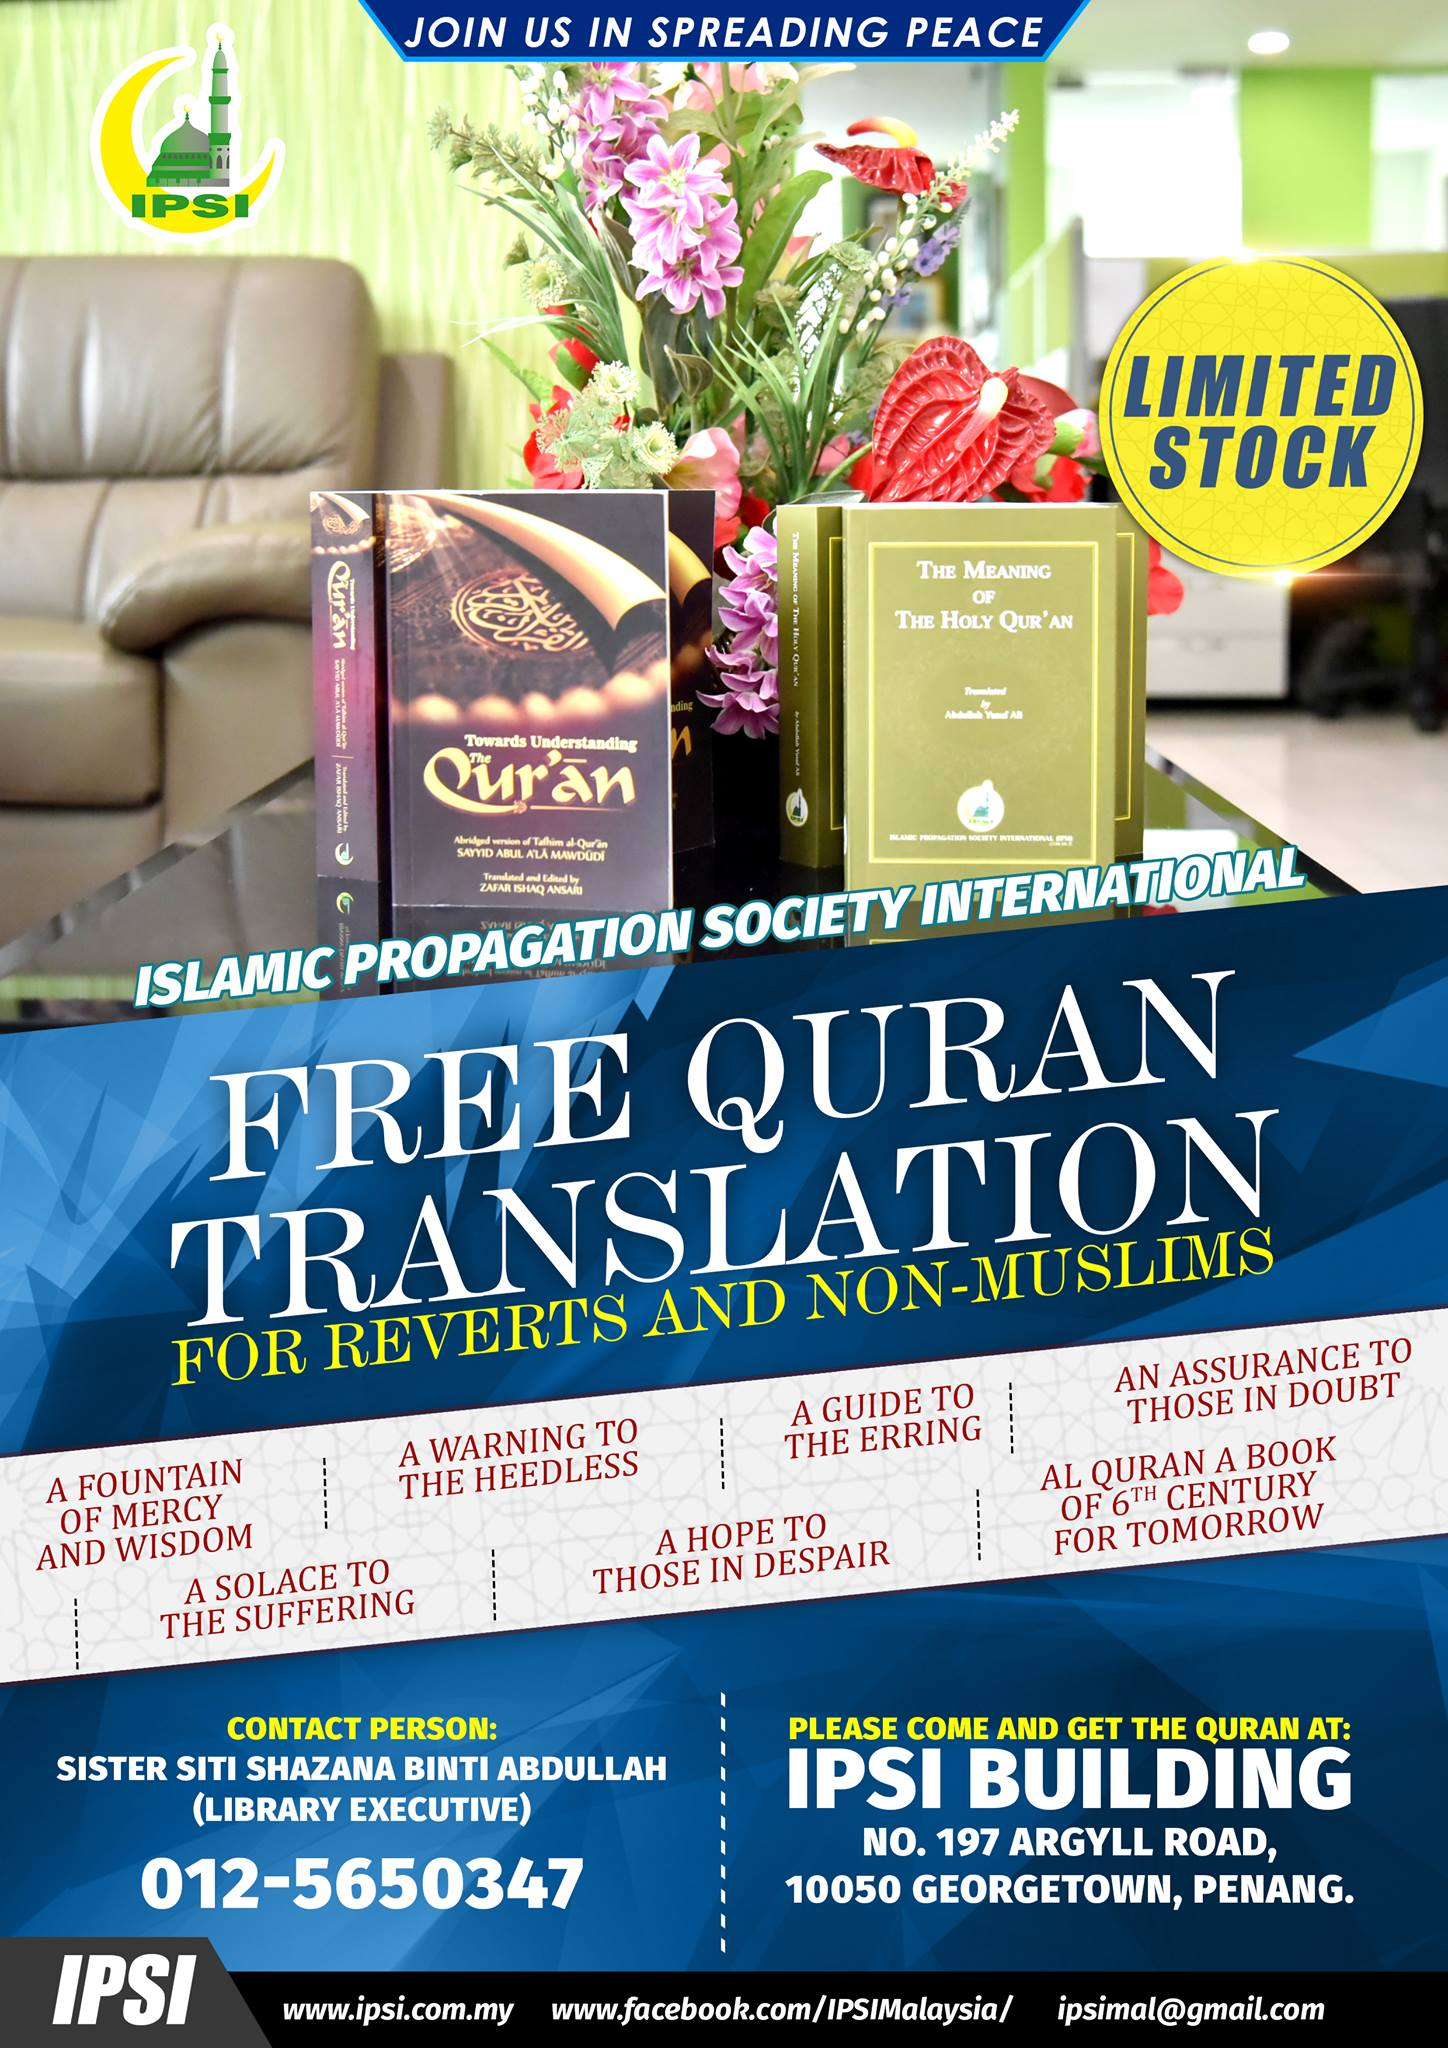 FREE QURAN FOR REVERTS AND NON-MUSLIMS